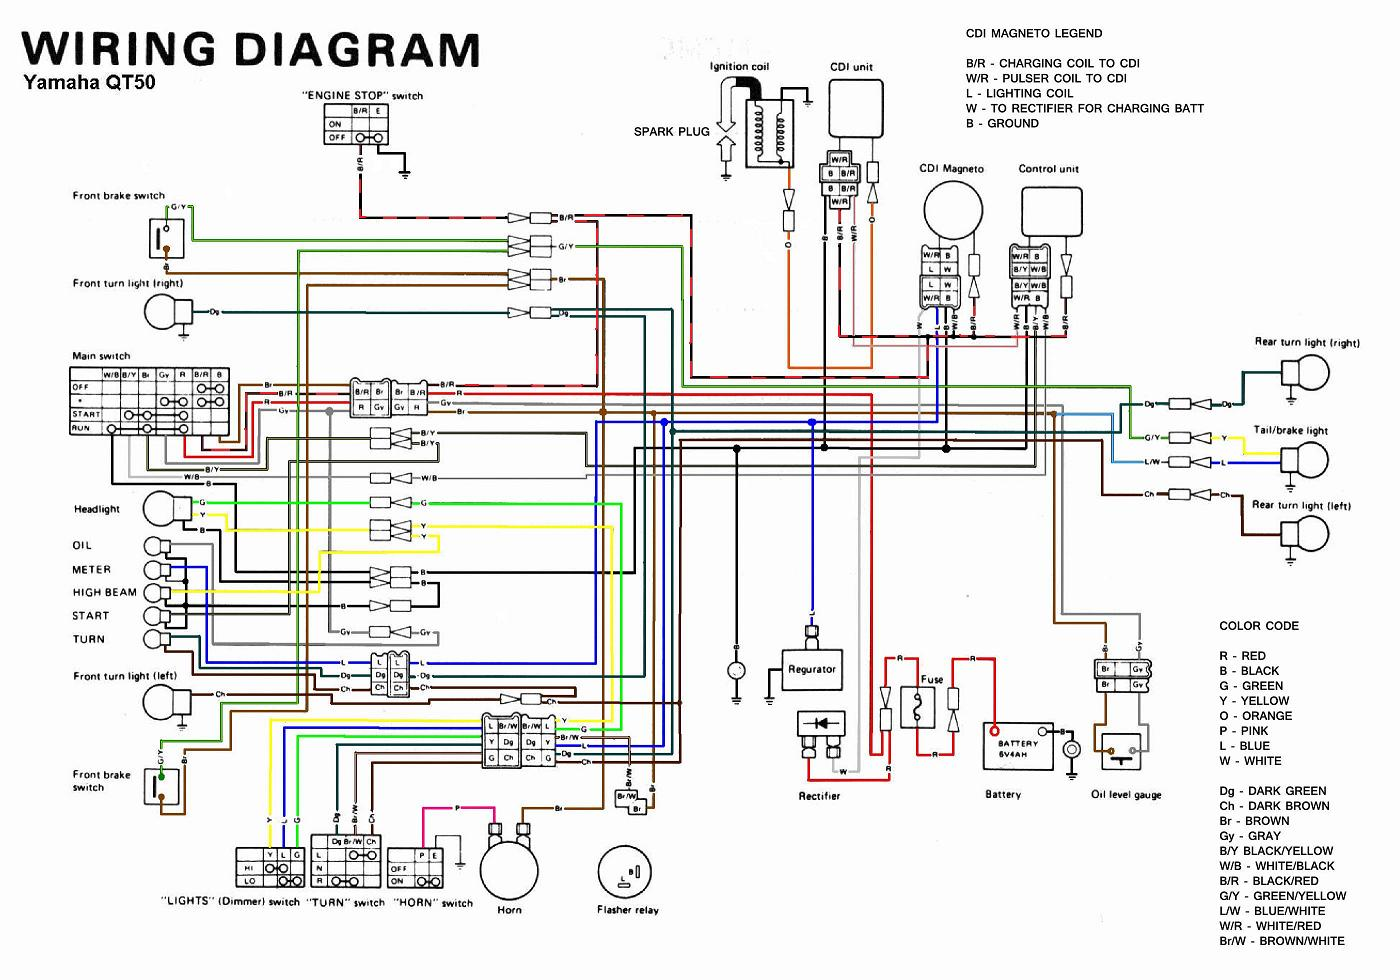 4 wire Electric Start Wiring Diagram HI besides  moreover Znen 12Coil Stator also 150carb1 as well 1692564 orig together with  besides Yamaha QT50 Wiring Diagram further 79dea7e1312c482e3bcb06f332eeebd5 also  further Hammerhead GT200 Wiring further Laguna 20    20Hope 2050 20Wiring 20Diagram. on honda 250 gy6 engine wiring diagram